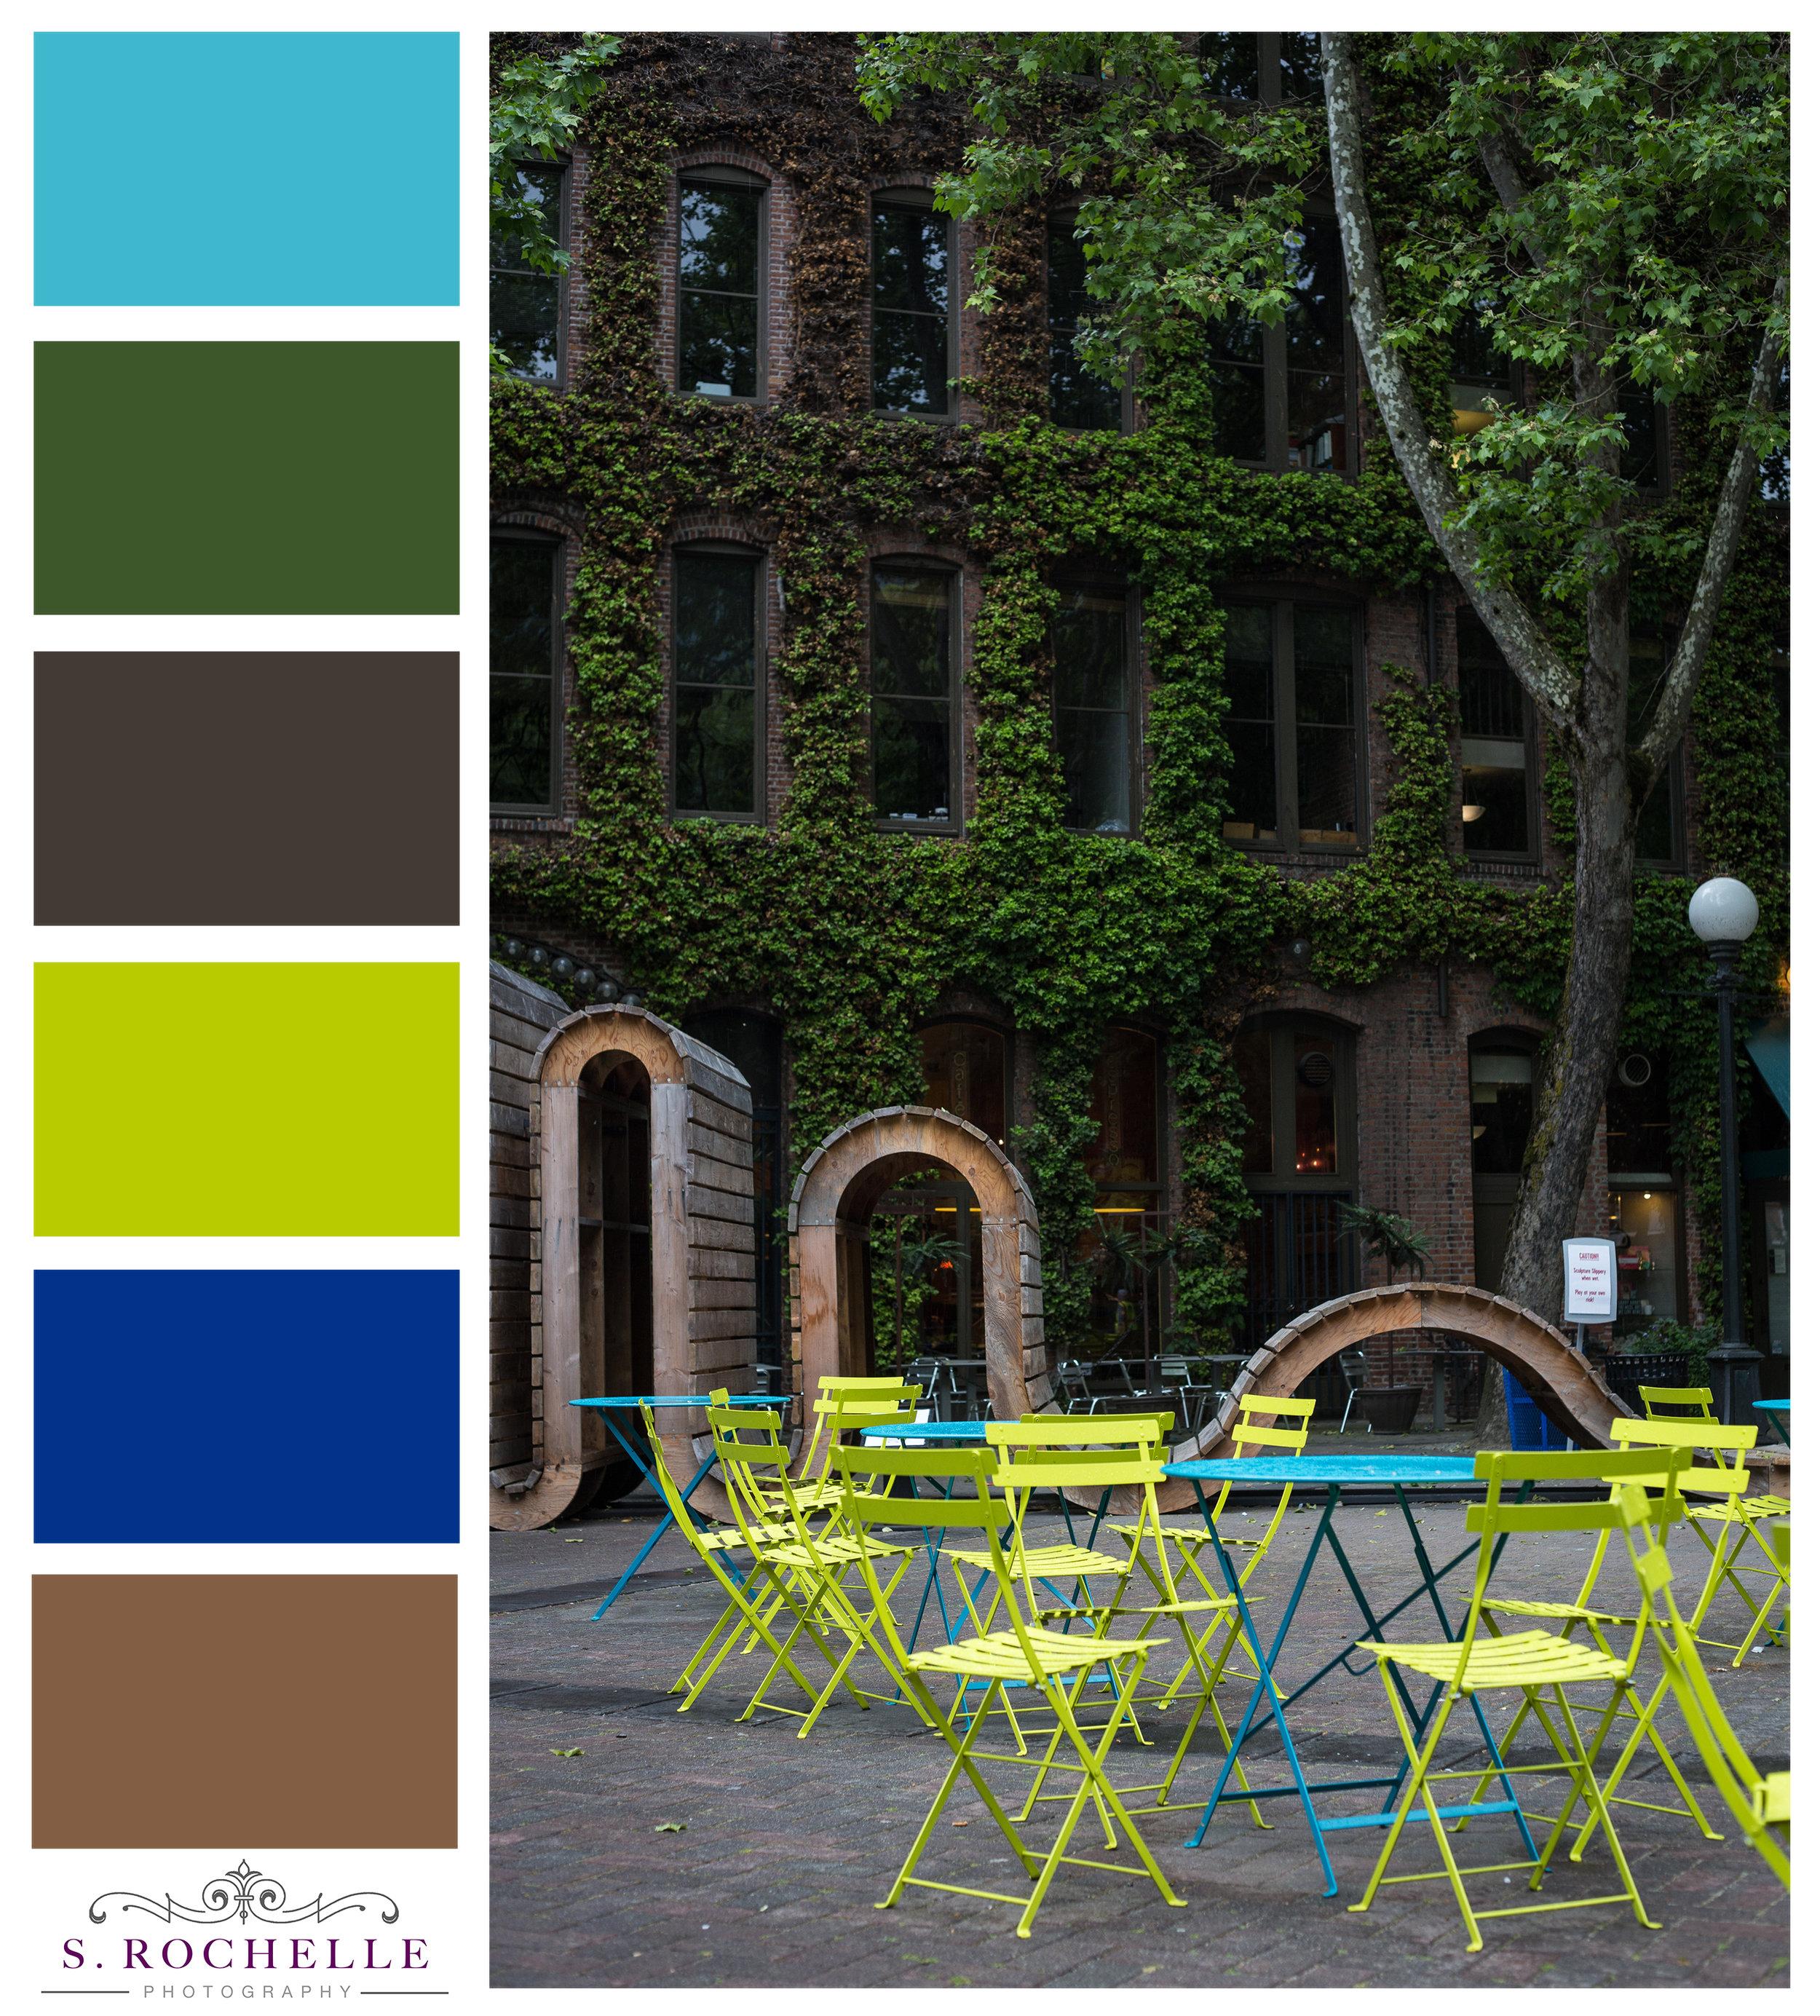 Seattle_Occidental_Park_Chairs_S_Rochelle_Photography_IMG_5236_ColorPalatte.jpg